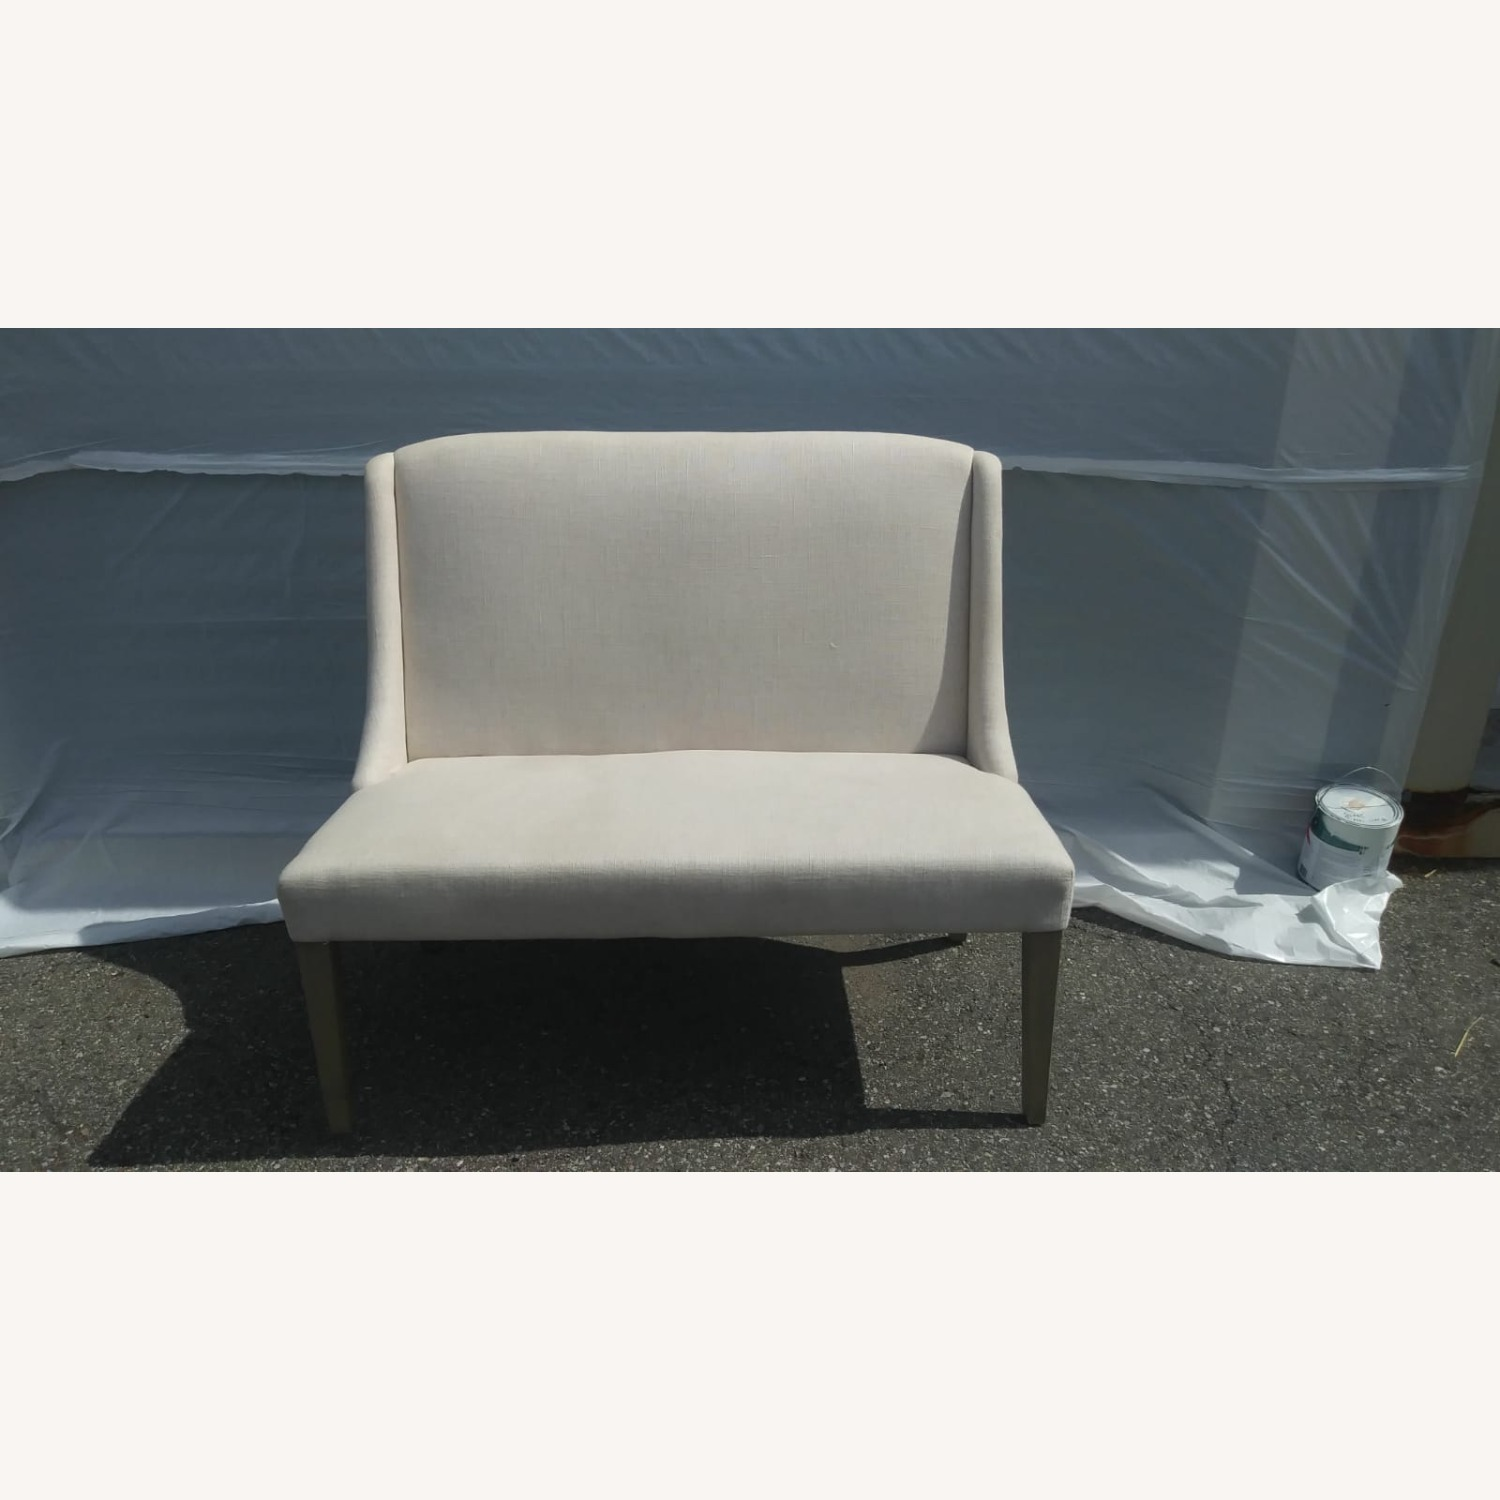 ABC Carpet and Home White Settee Couch - image-1